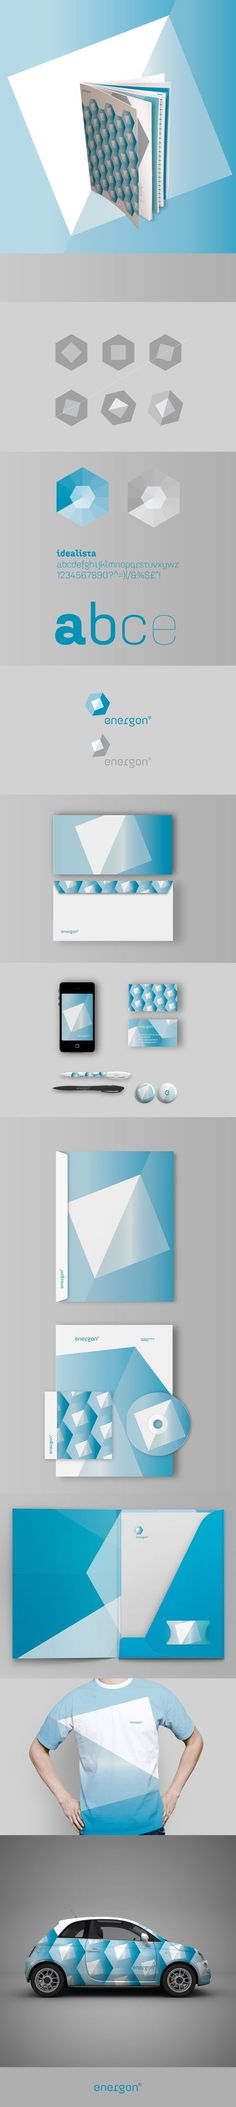 Energon – Brand Identity by Mimmo Manes, via Behance #canefantasma #energy #shapes #manes #mimmo #brand #stationery #logo